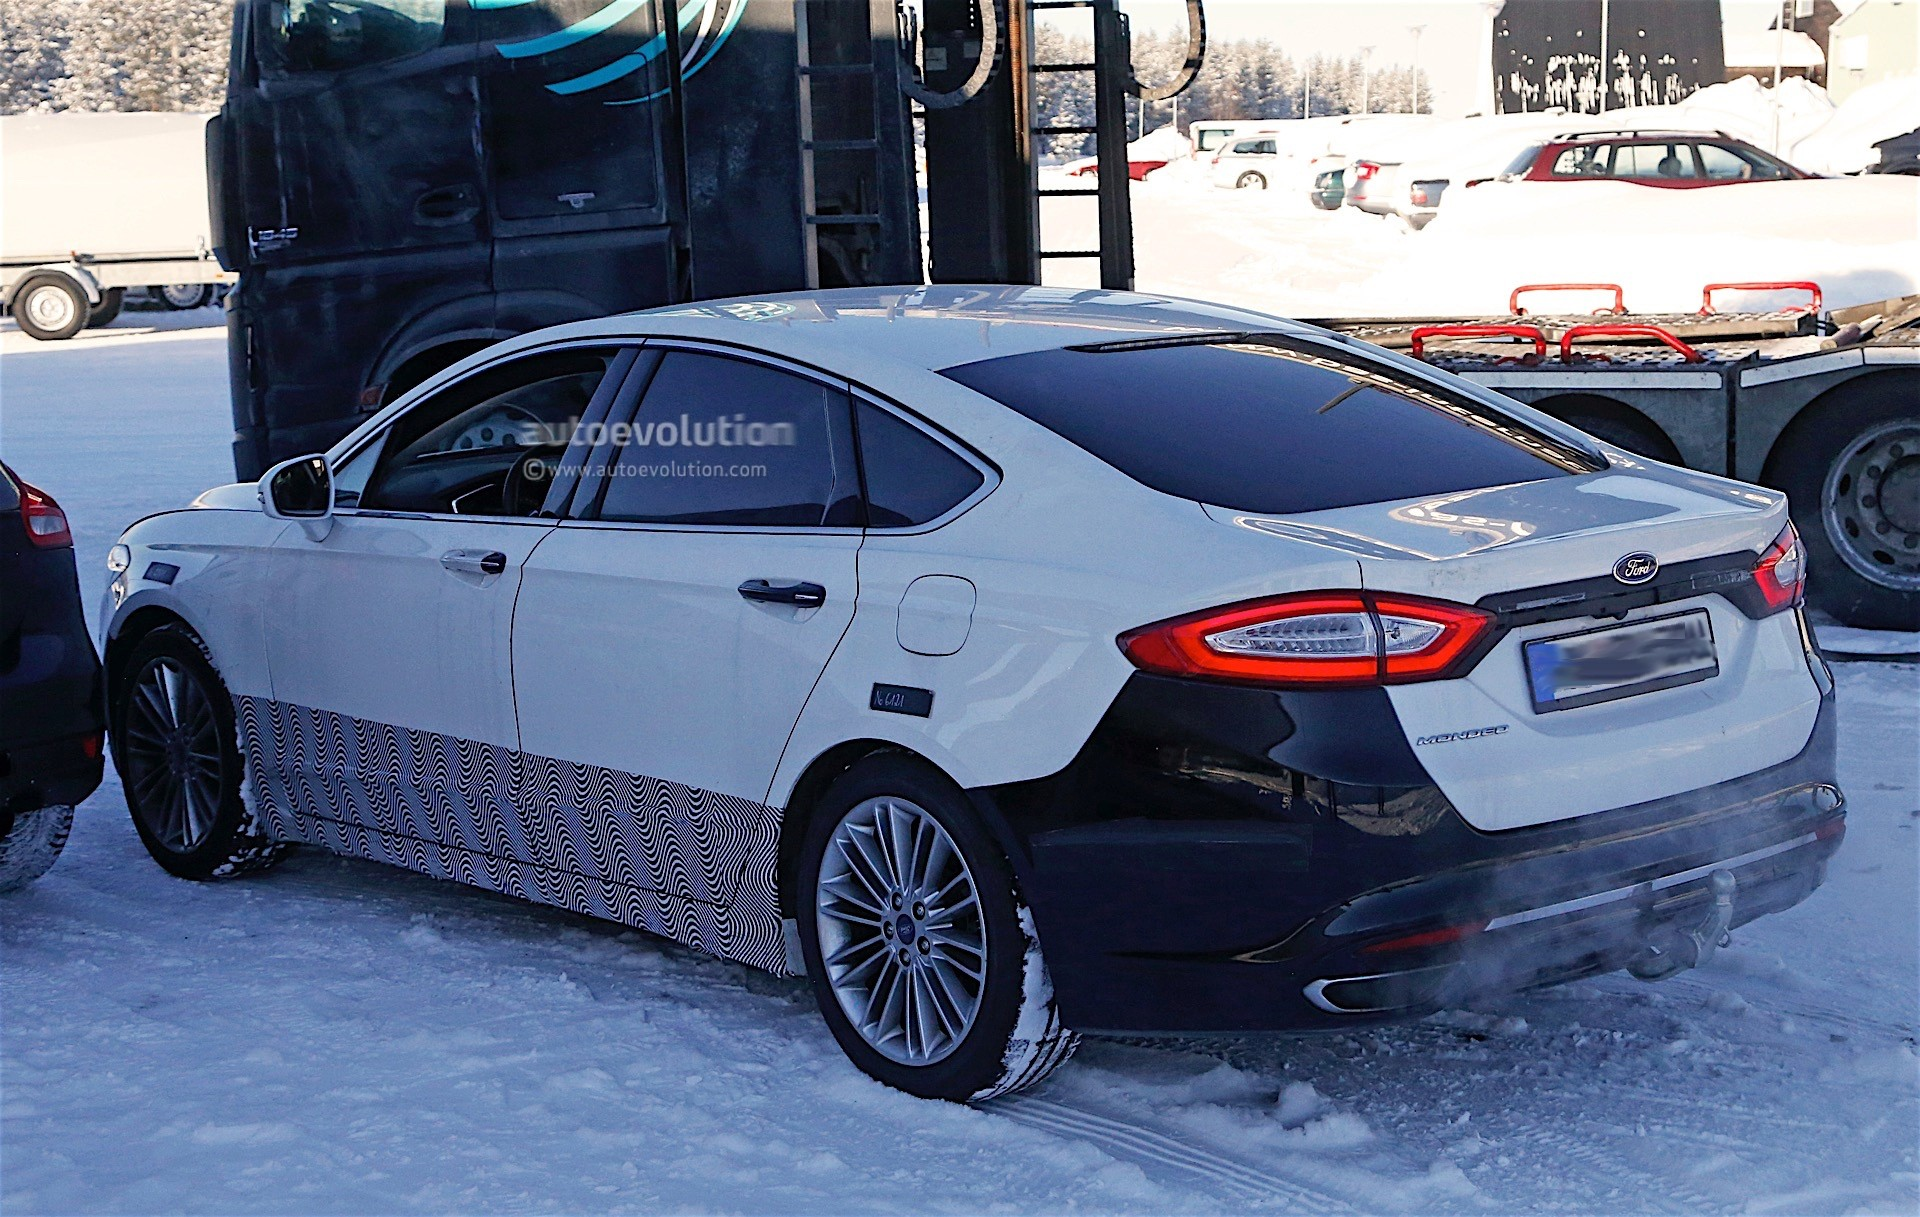 2020 Ford Mondeo Facelift Spyshots Reveal Refreshed Lights and Bumpers ...